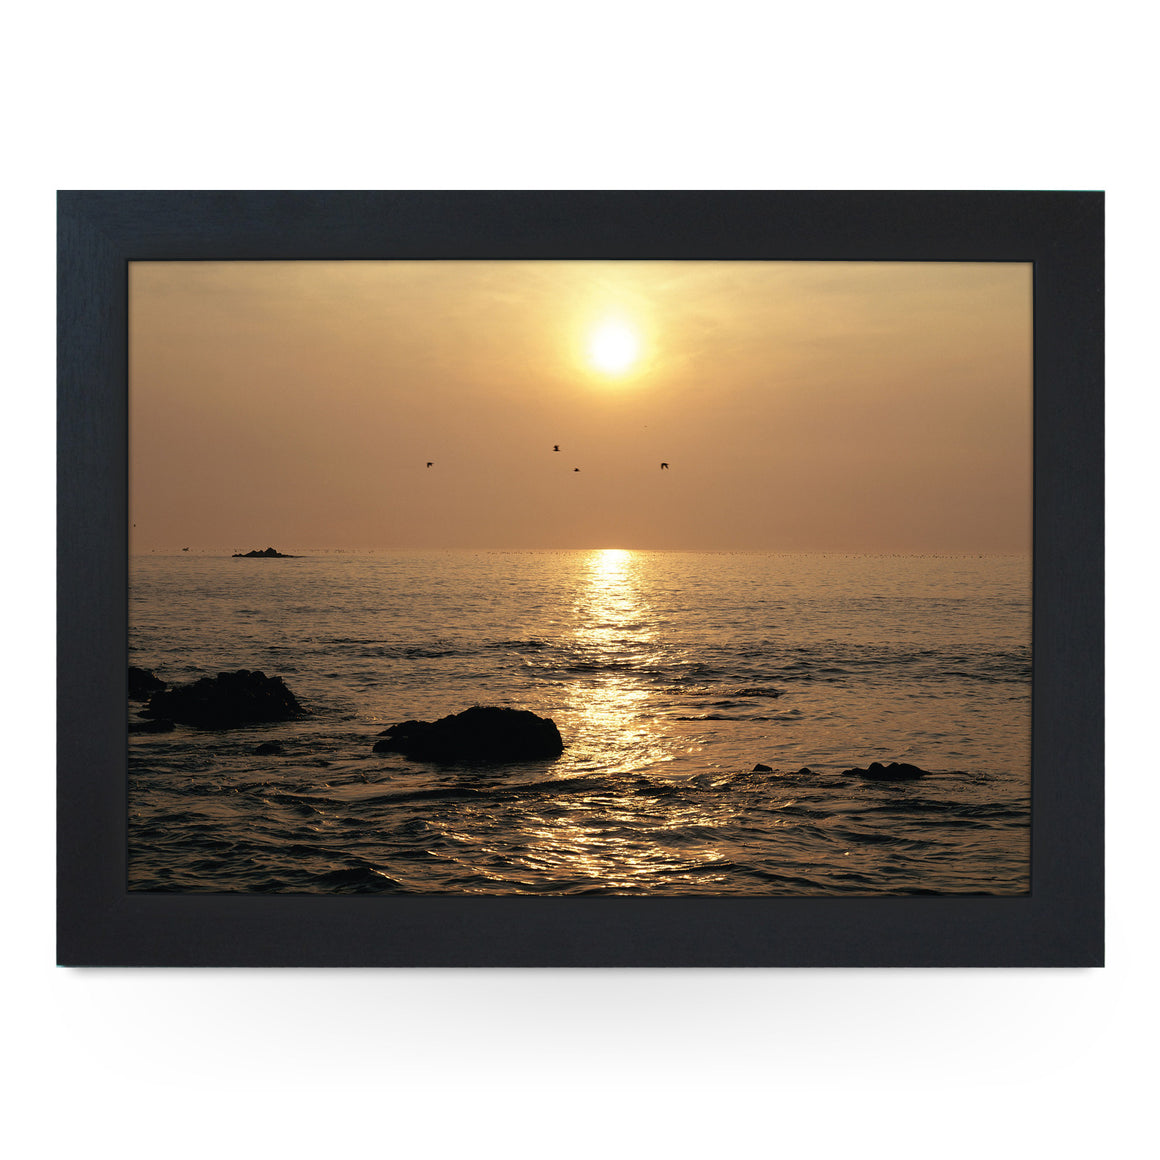 Sea at Sunset Lap Tray - L0361